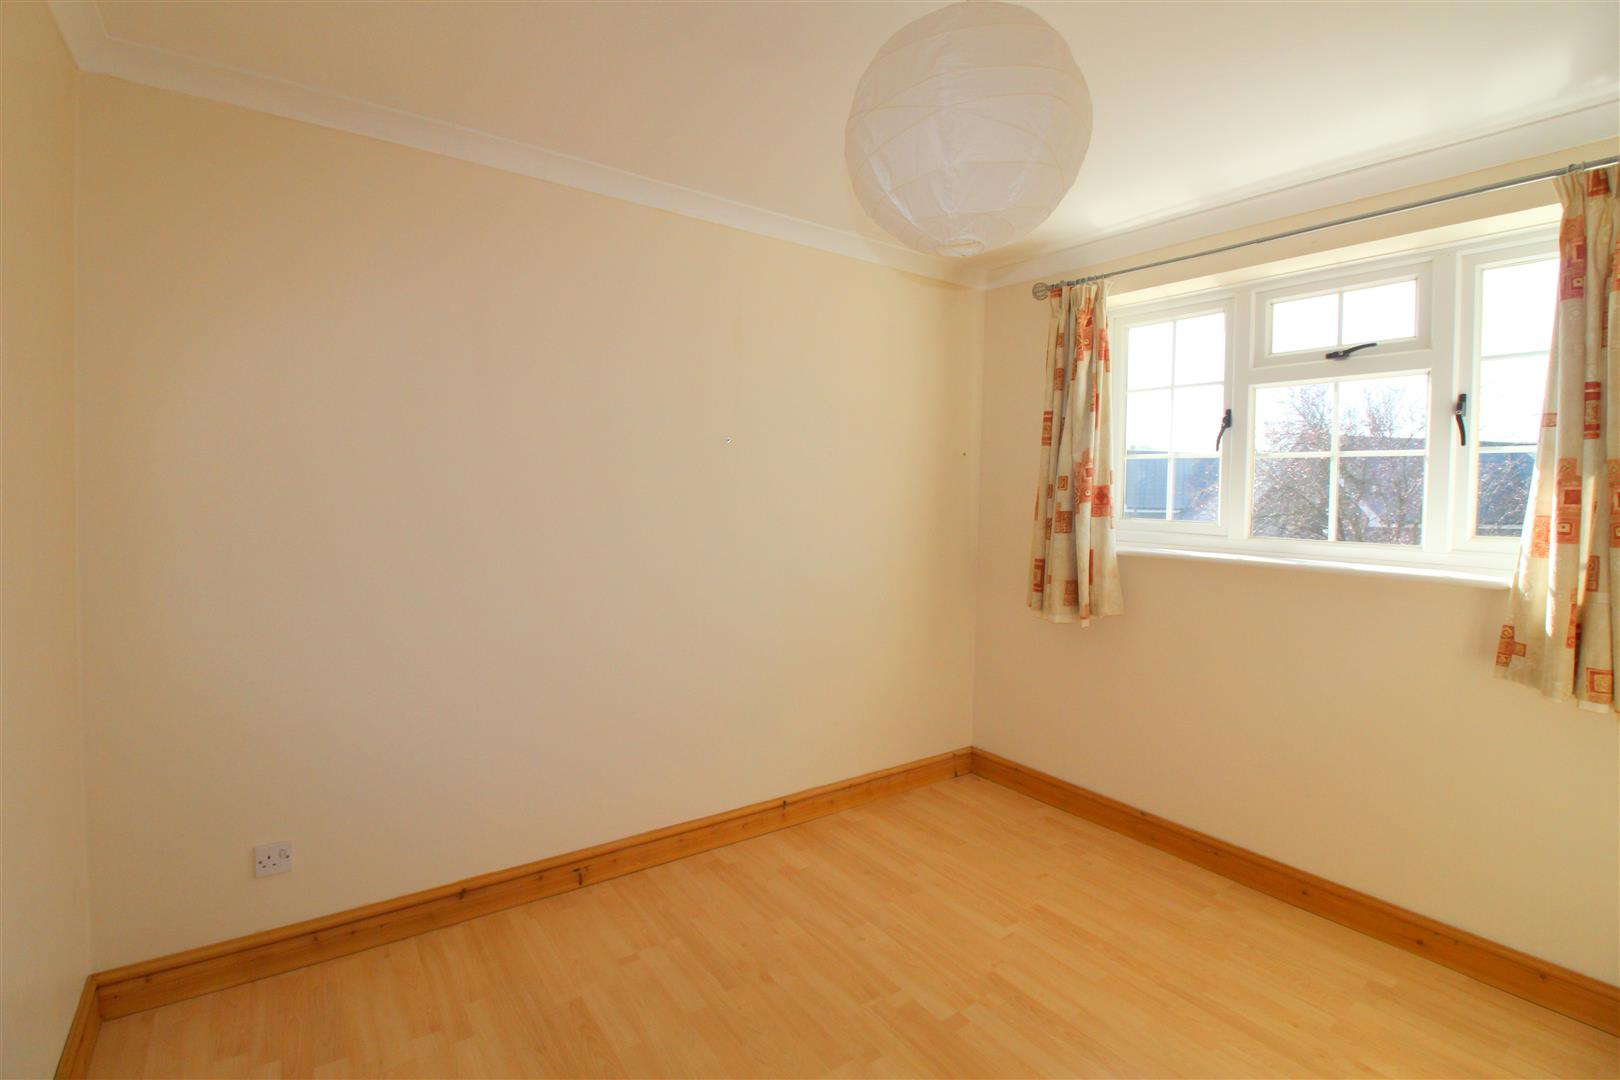 Freemantle Drive, Kempsey, Worcester